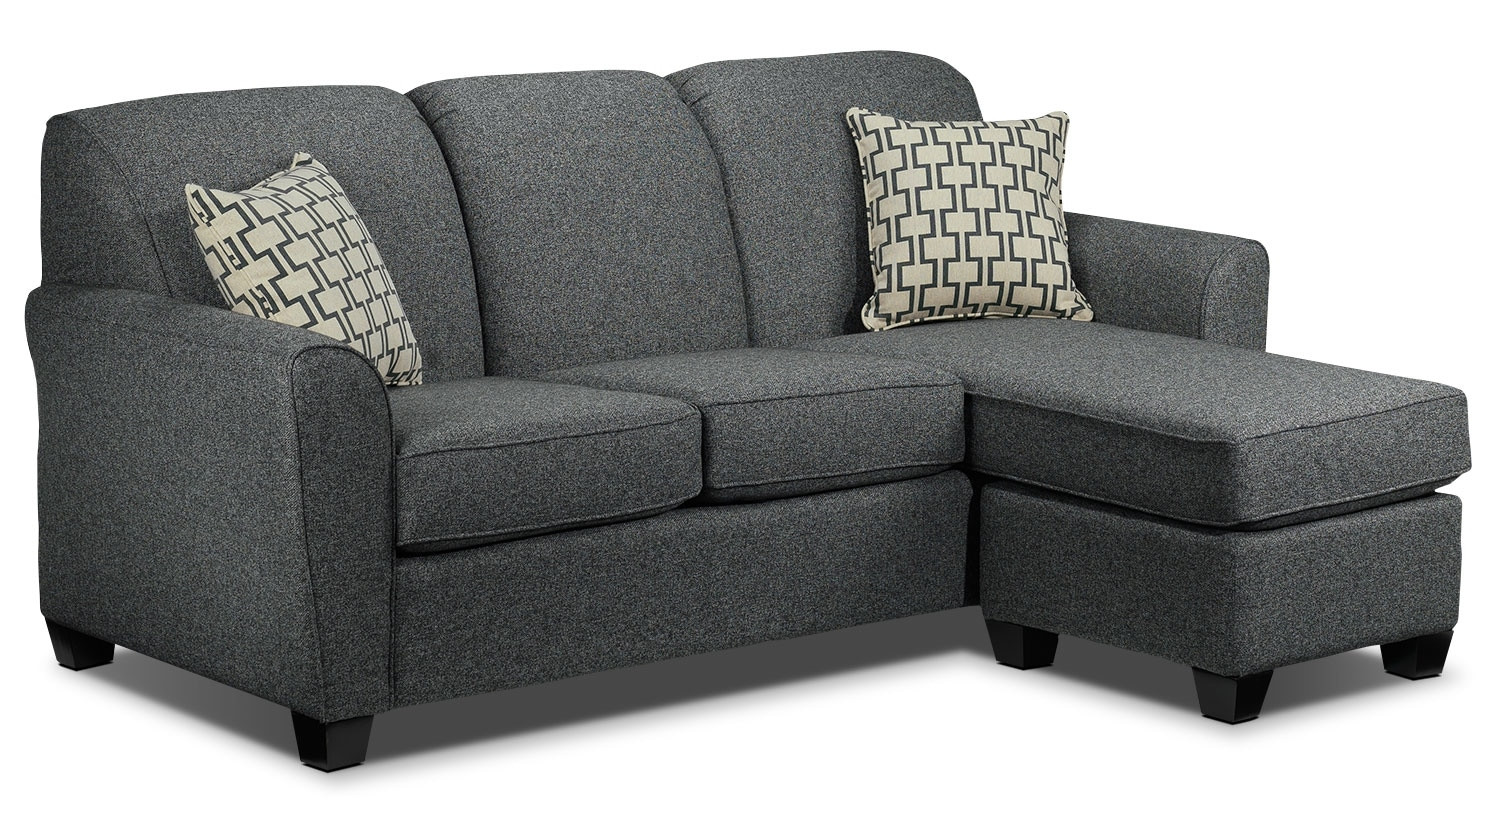 Best ideas about Grey Sectional Sofa With Chaise . Save or Pin Ashby Chaise Sofa Grey Now.